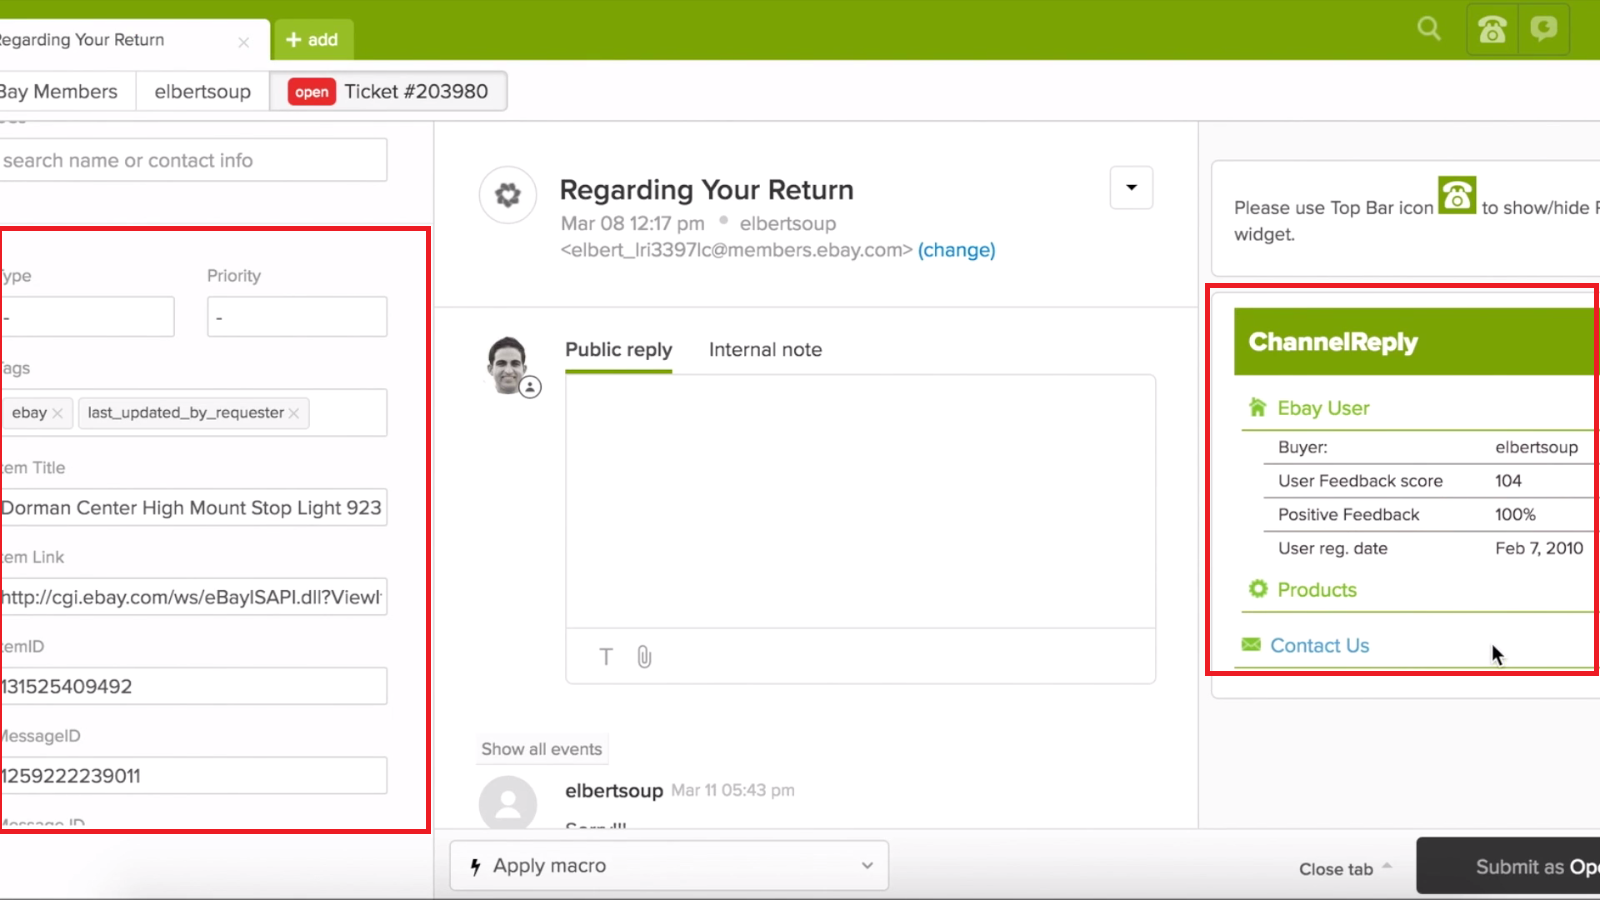 eBay Message in Zendesk with ChannelReply